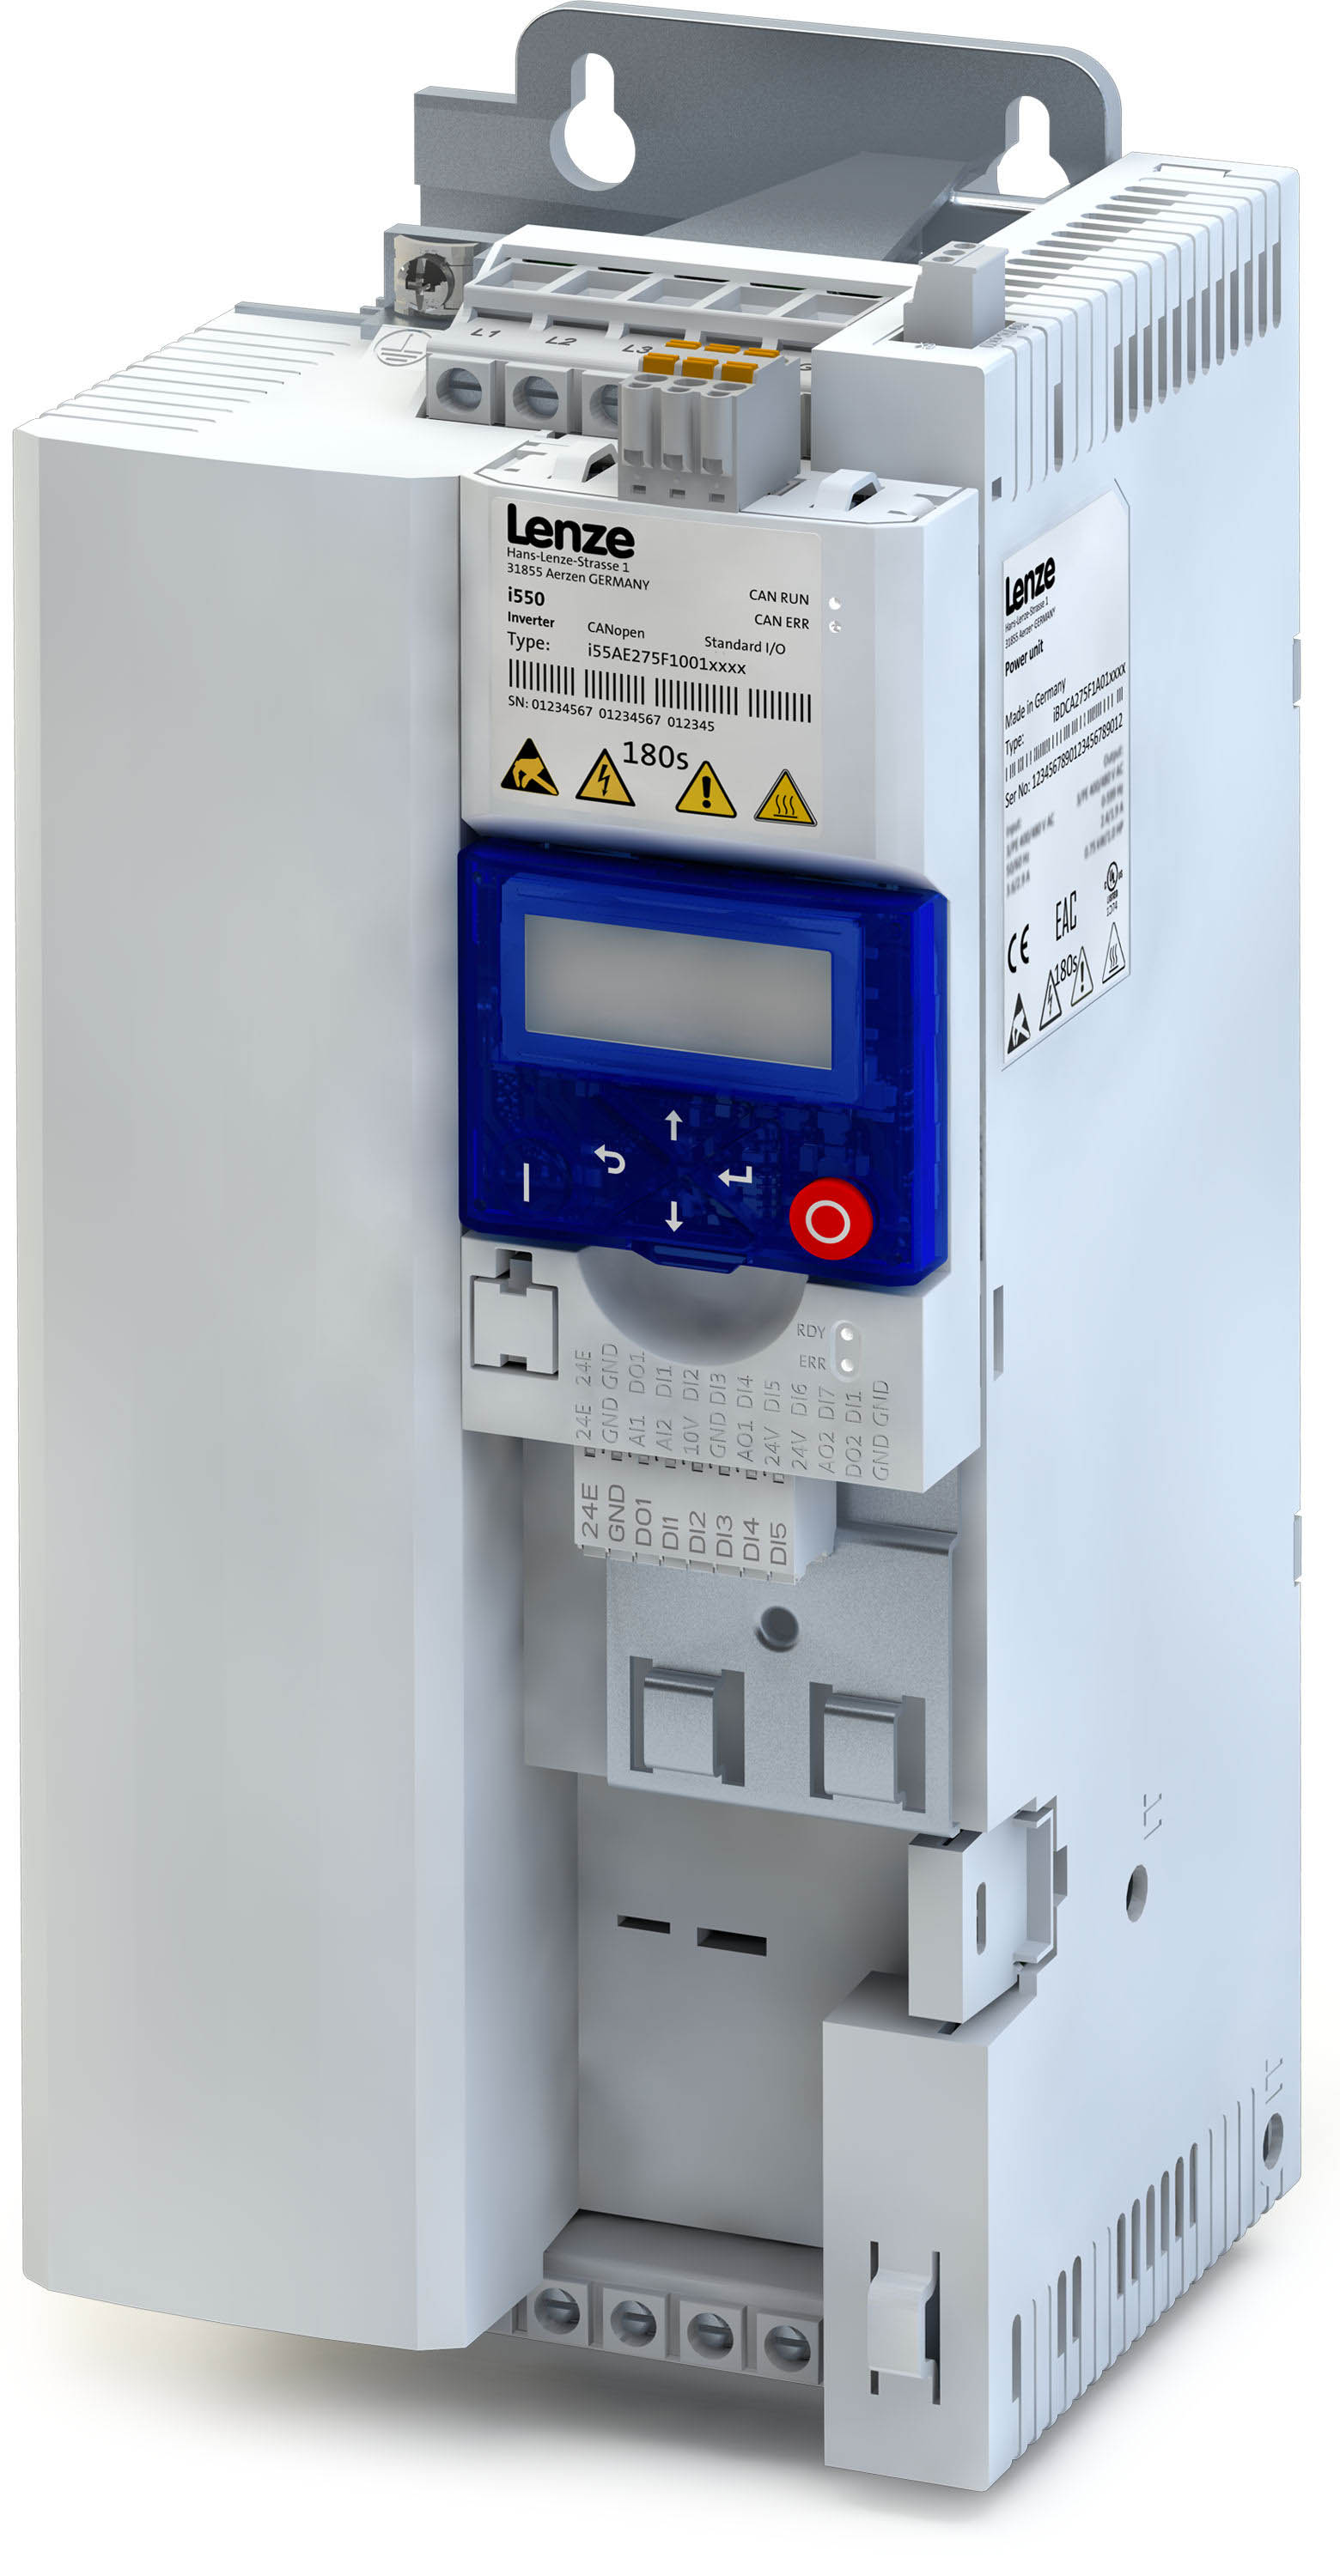 ac tech wiring diagram ac image wiring diagram keb variable frequency drive wiring diagram janitrol furnace on ac tech wiring diagram